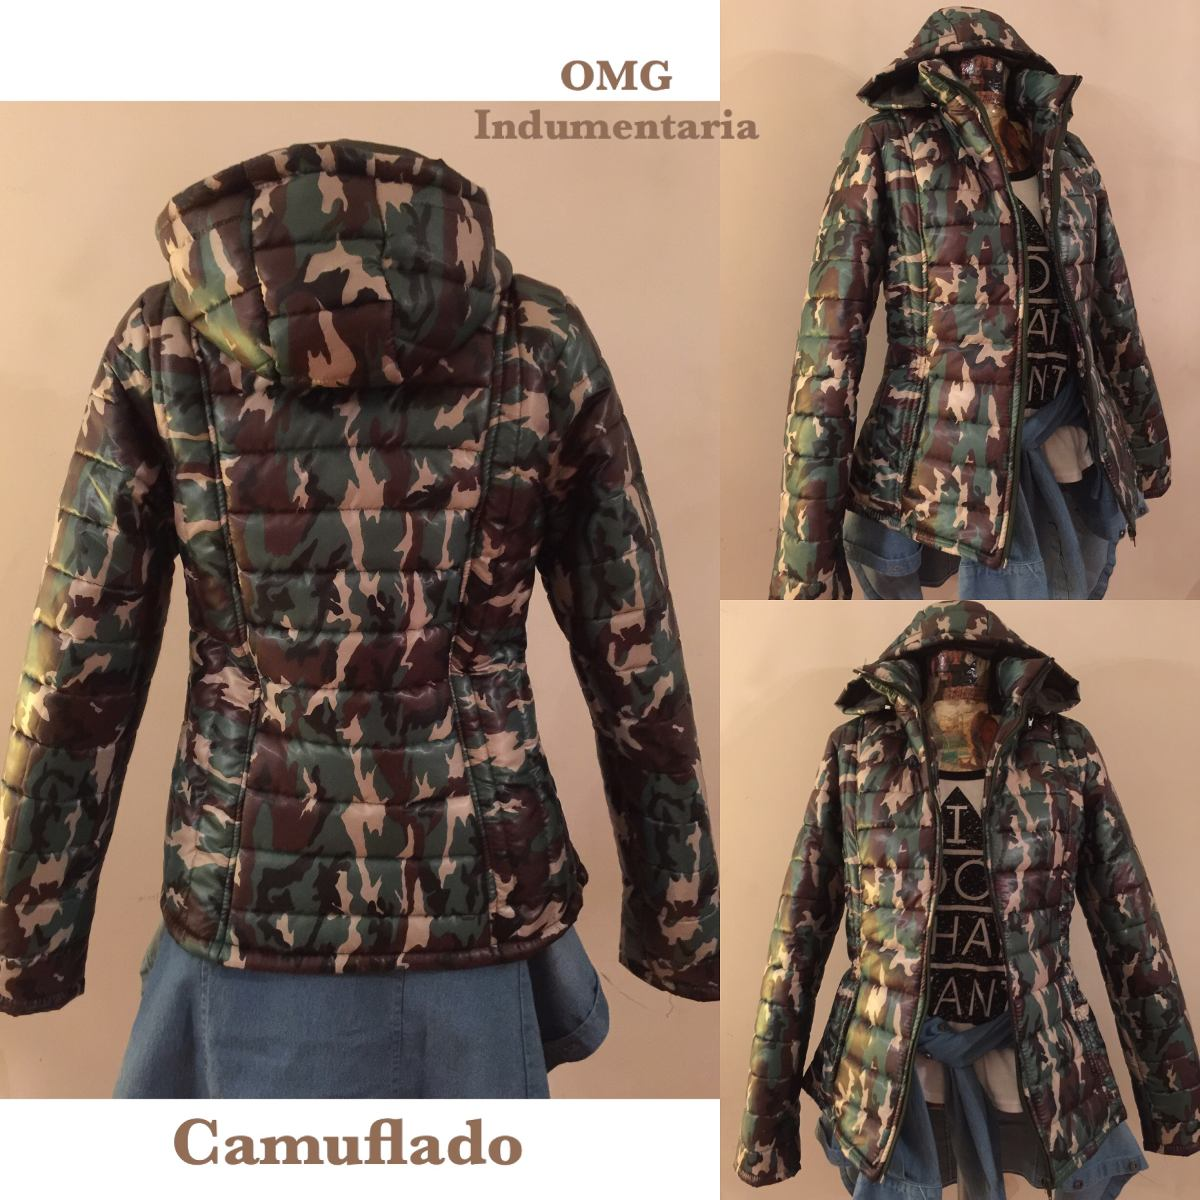 523d1ef0f campera-inflable-abrigo-mujer-camuflada-impermeable-capucha-D NQ NP 125405-MLA20865751069 082016-F.jpg